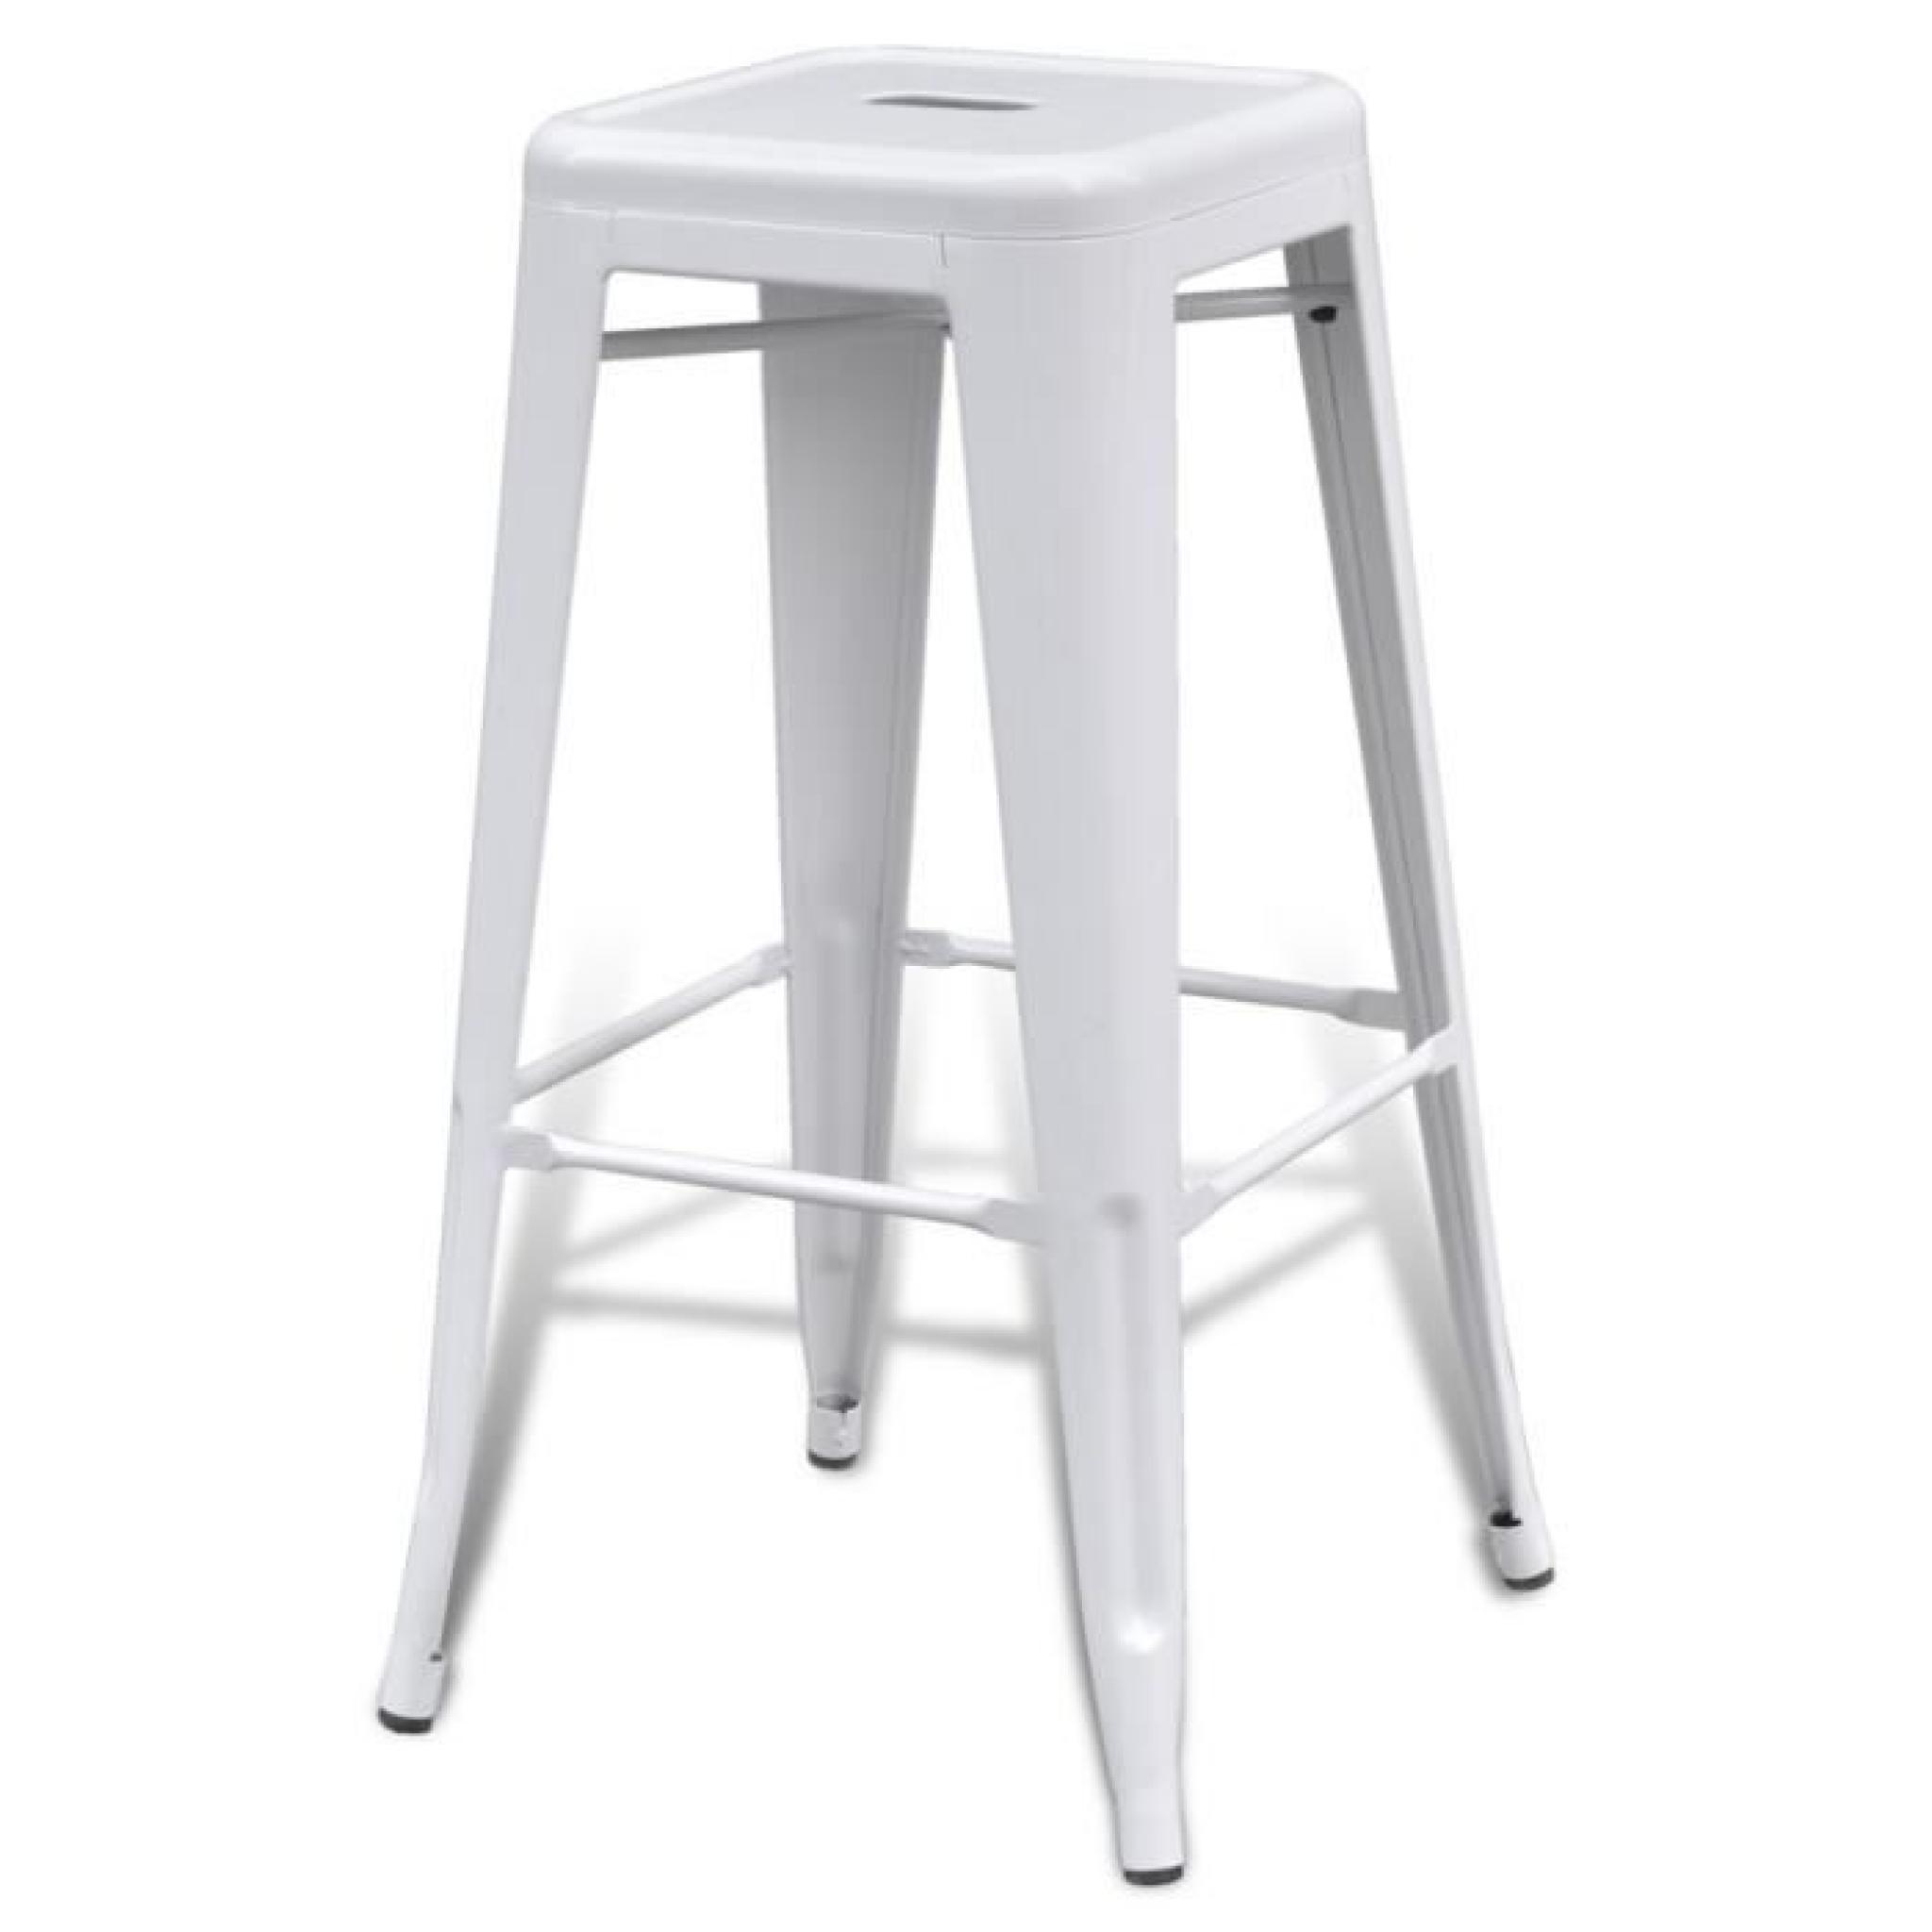 Songmics Lot De 2 Tabourets De Bar Stool Lot De 2 De Tabourets De Bar Hauts Blancs 4 Pieds Achat